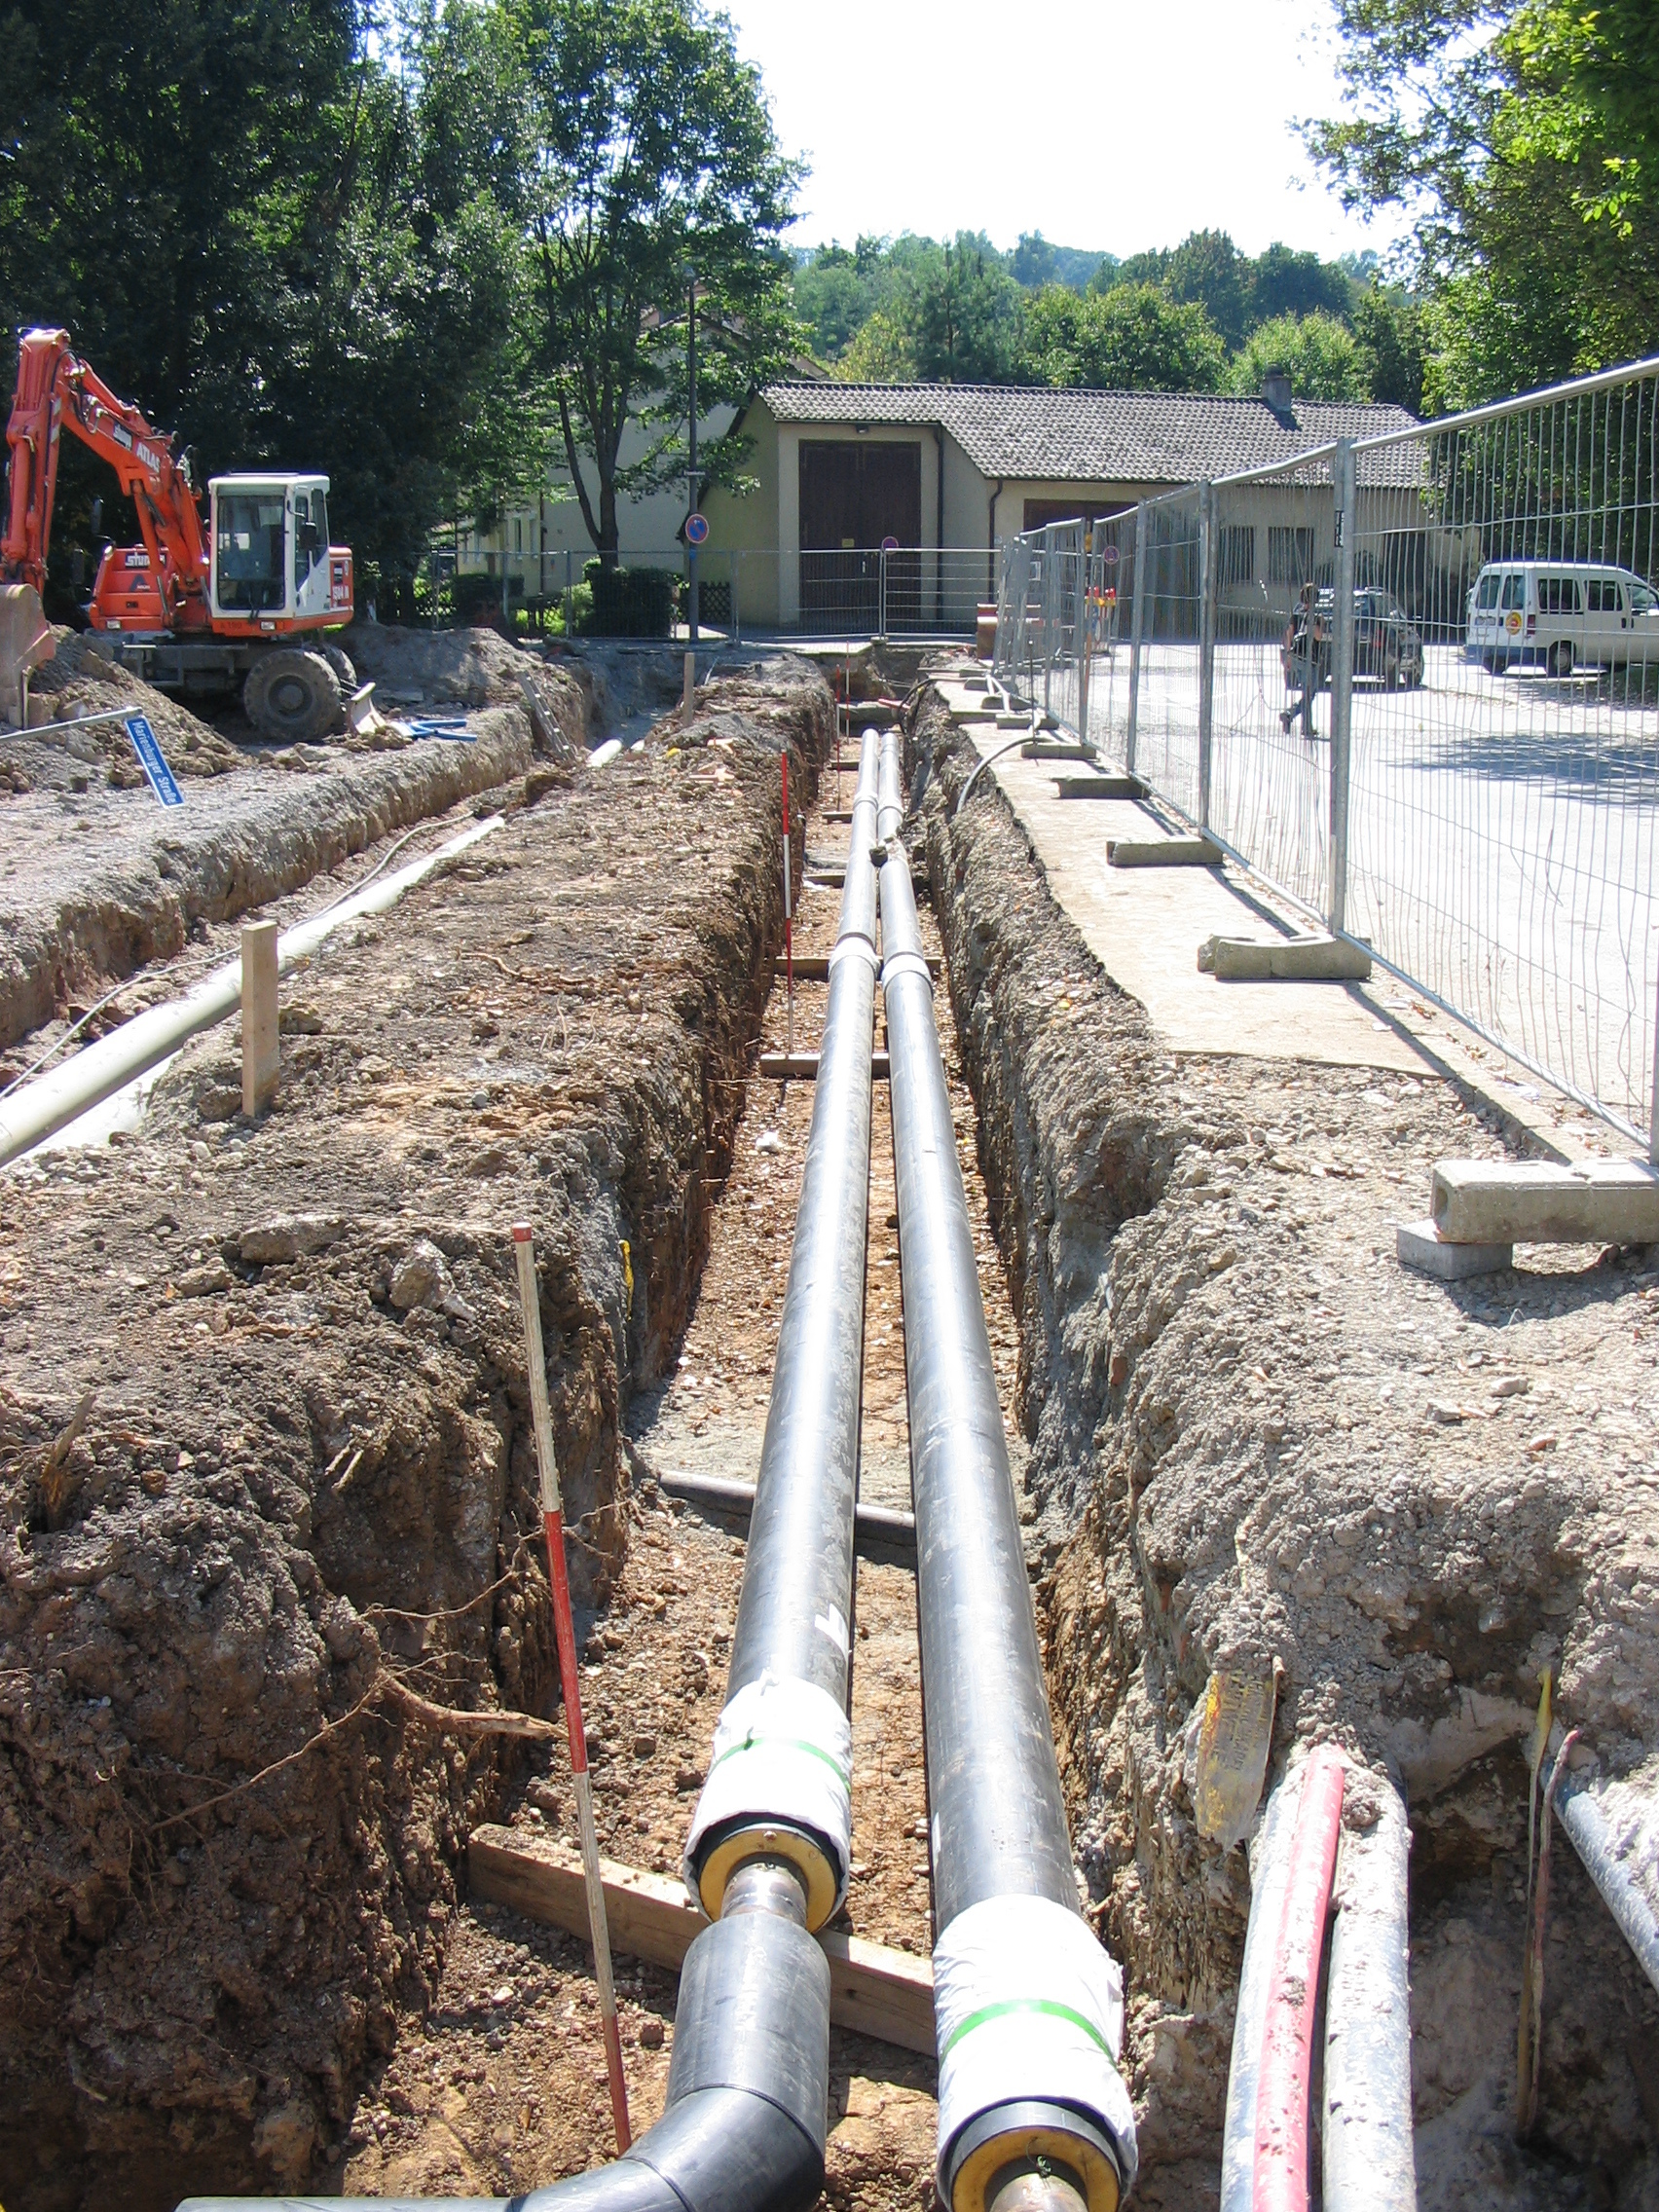 File:2005-08-30-district-heating-pipeline.jpg - Wikipedia, the ...